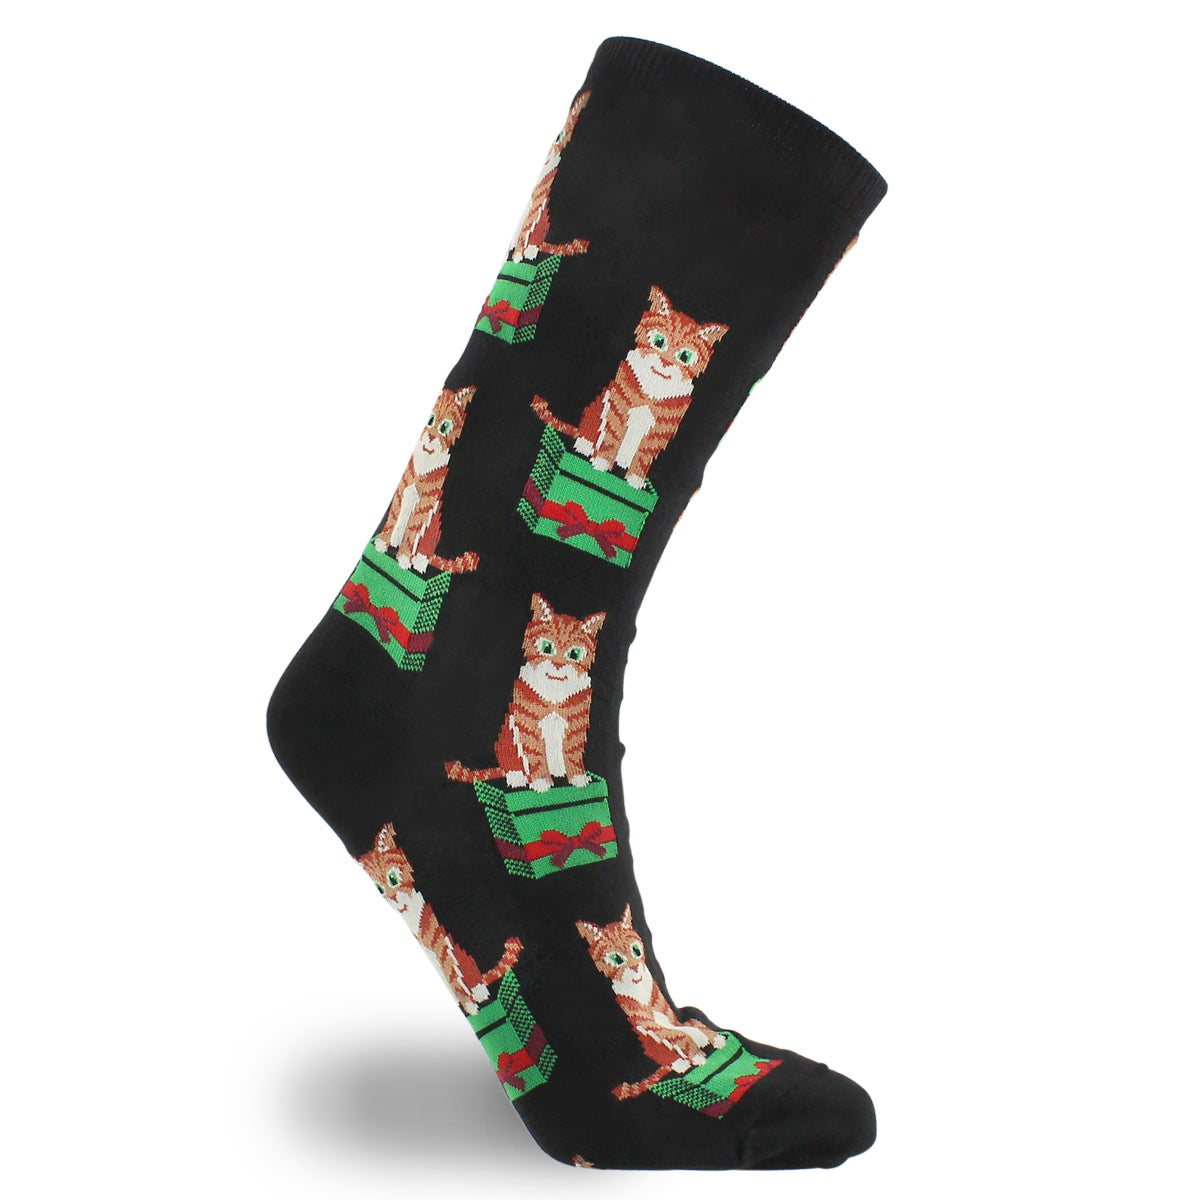 Lds Cat and Gift black printed sock